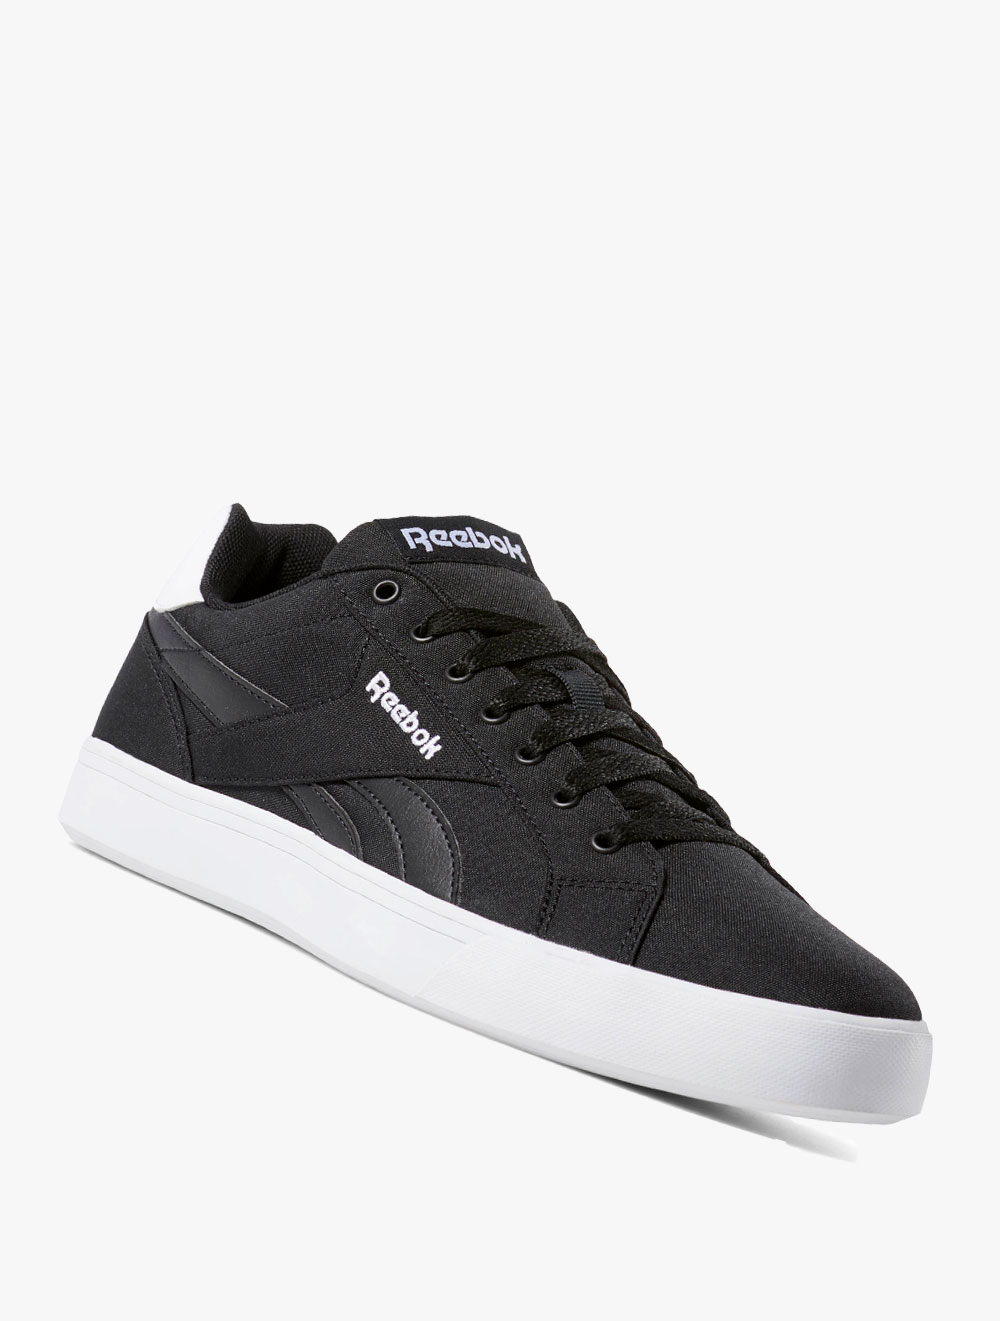 Reebok Royal Complete 2LT Men's Classic Shoes